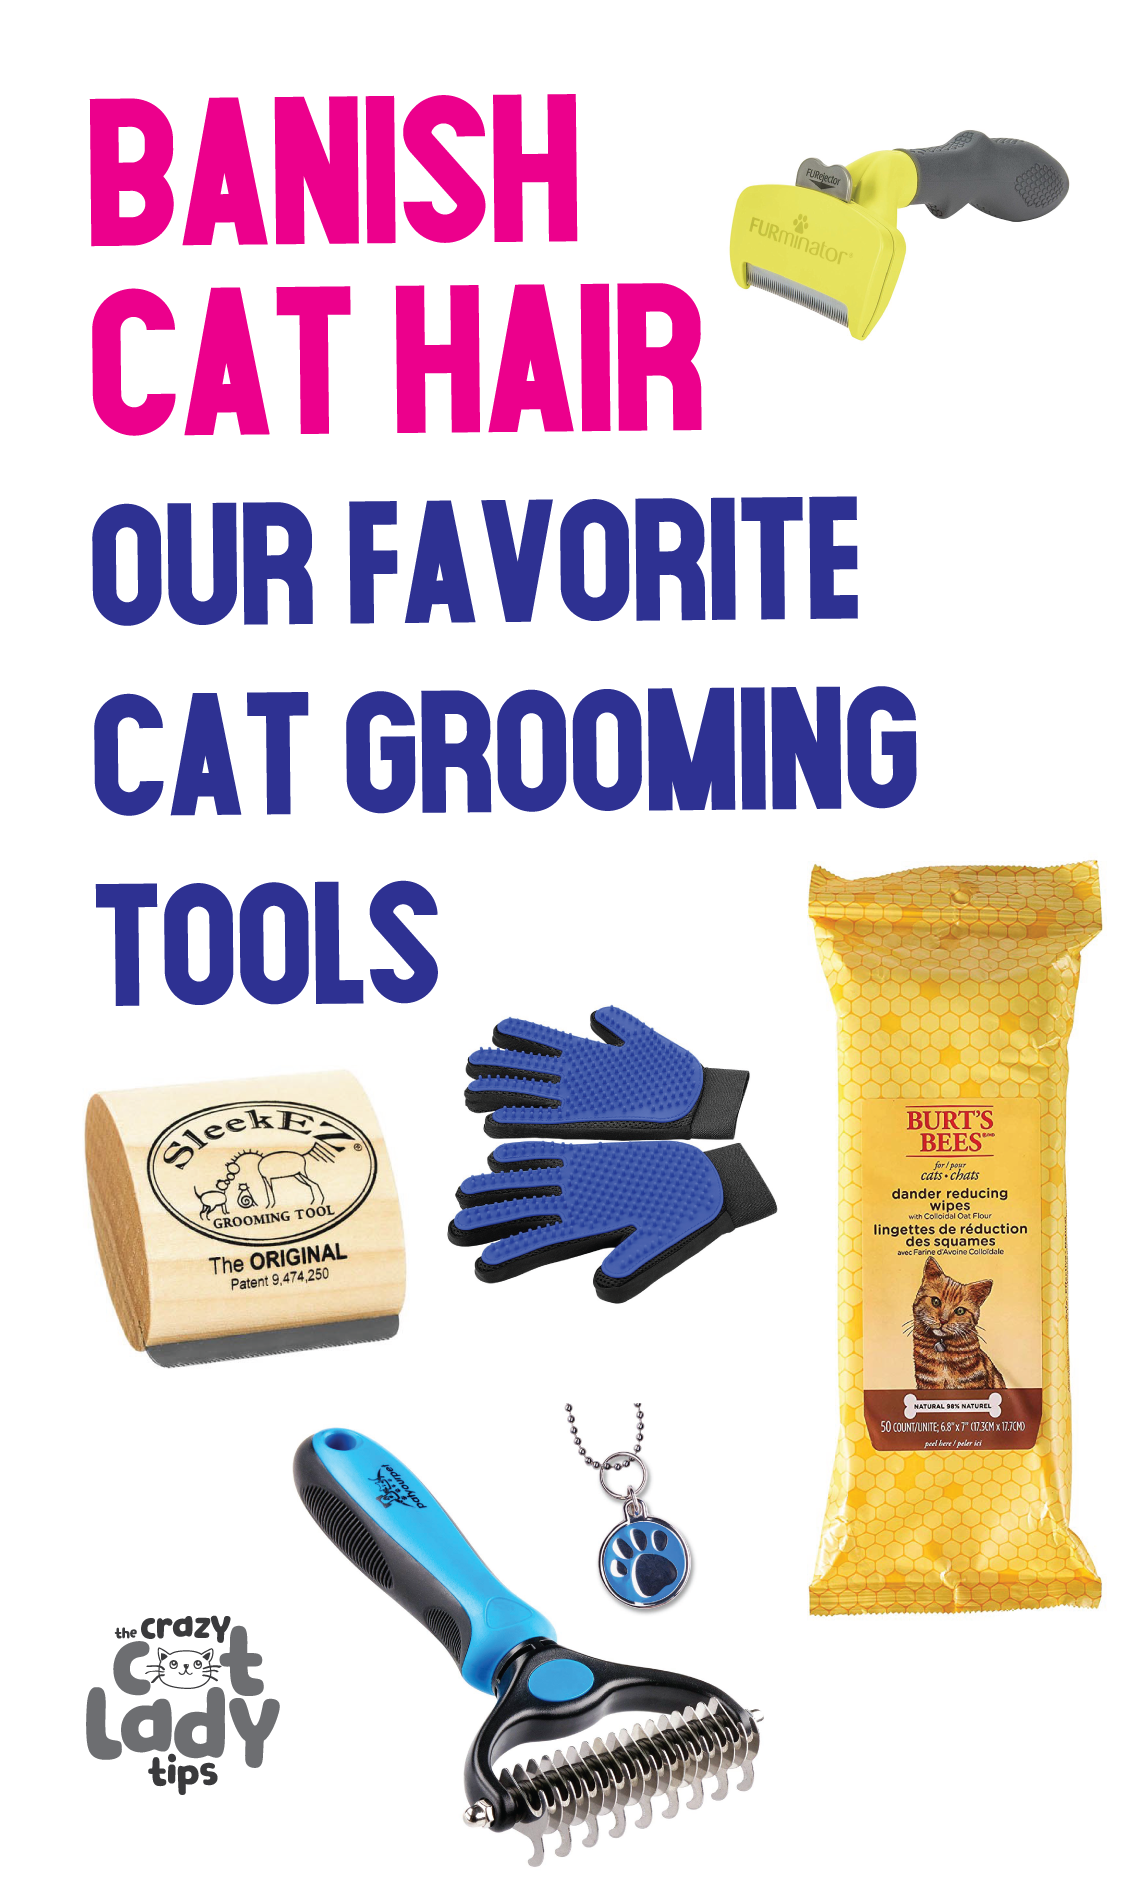 Banish cat hair for good with these best cat grooming tools! #catowner #cathair #catbrush